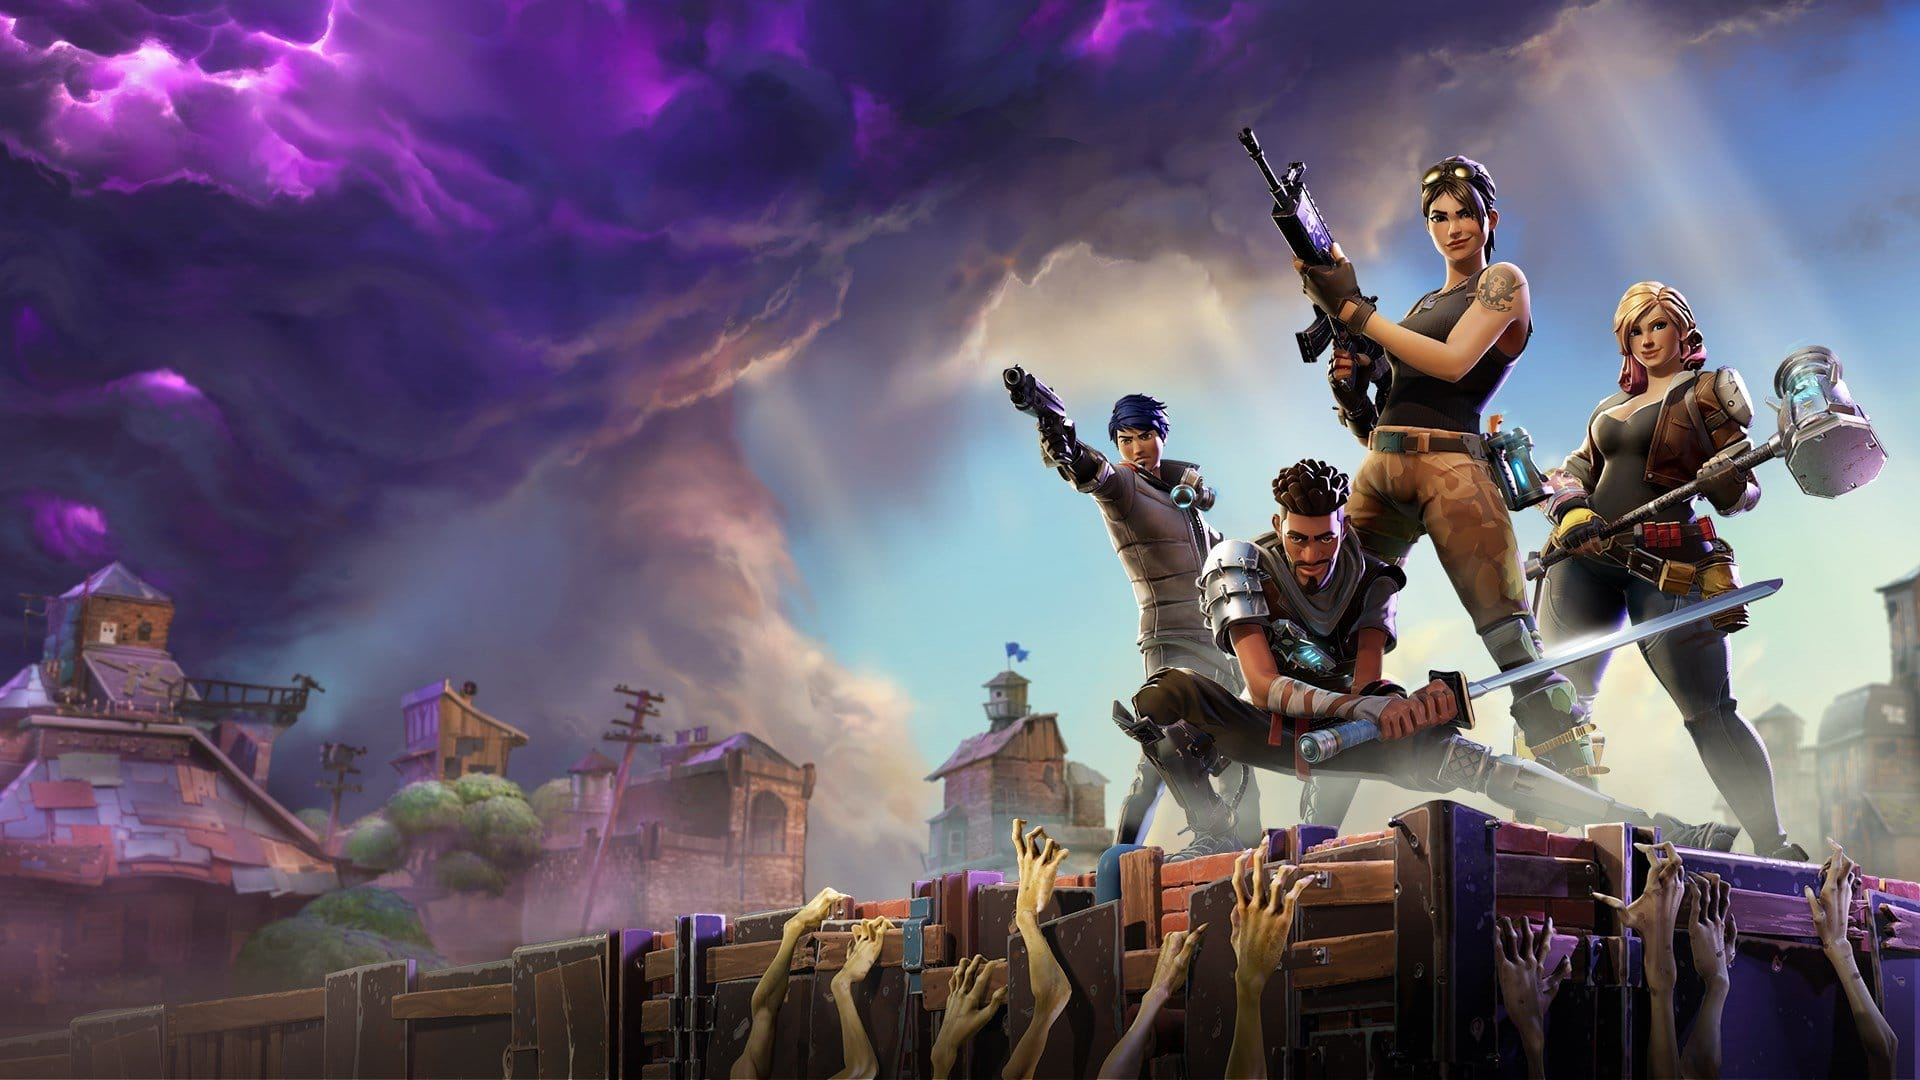 Fortnite salva el mundo